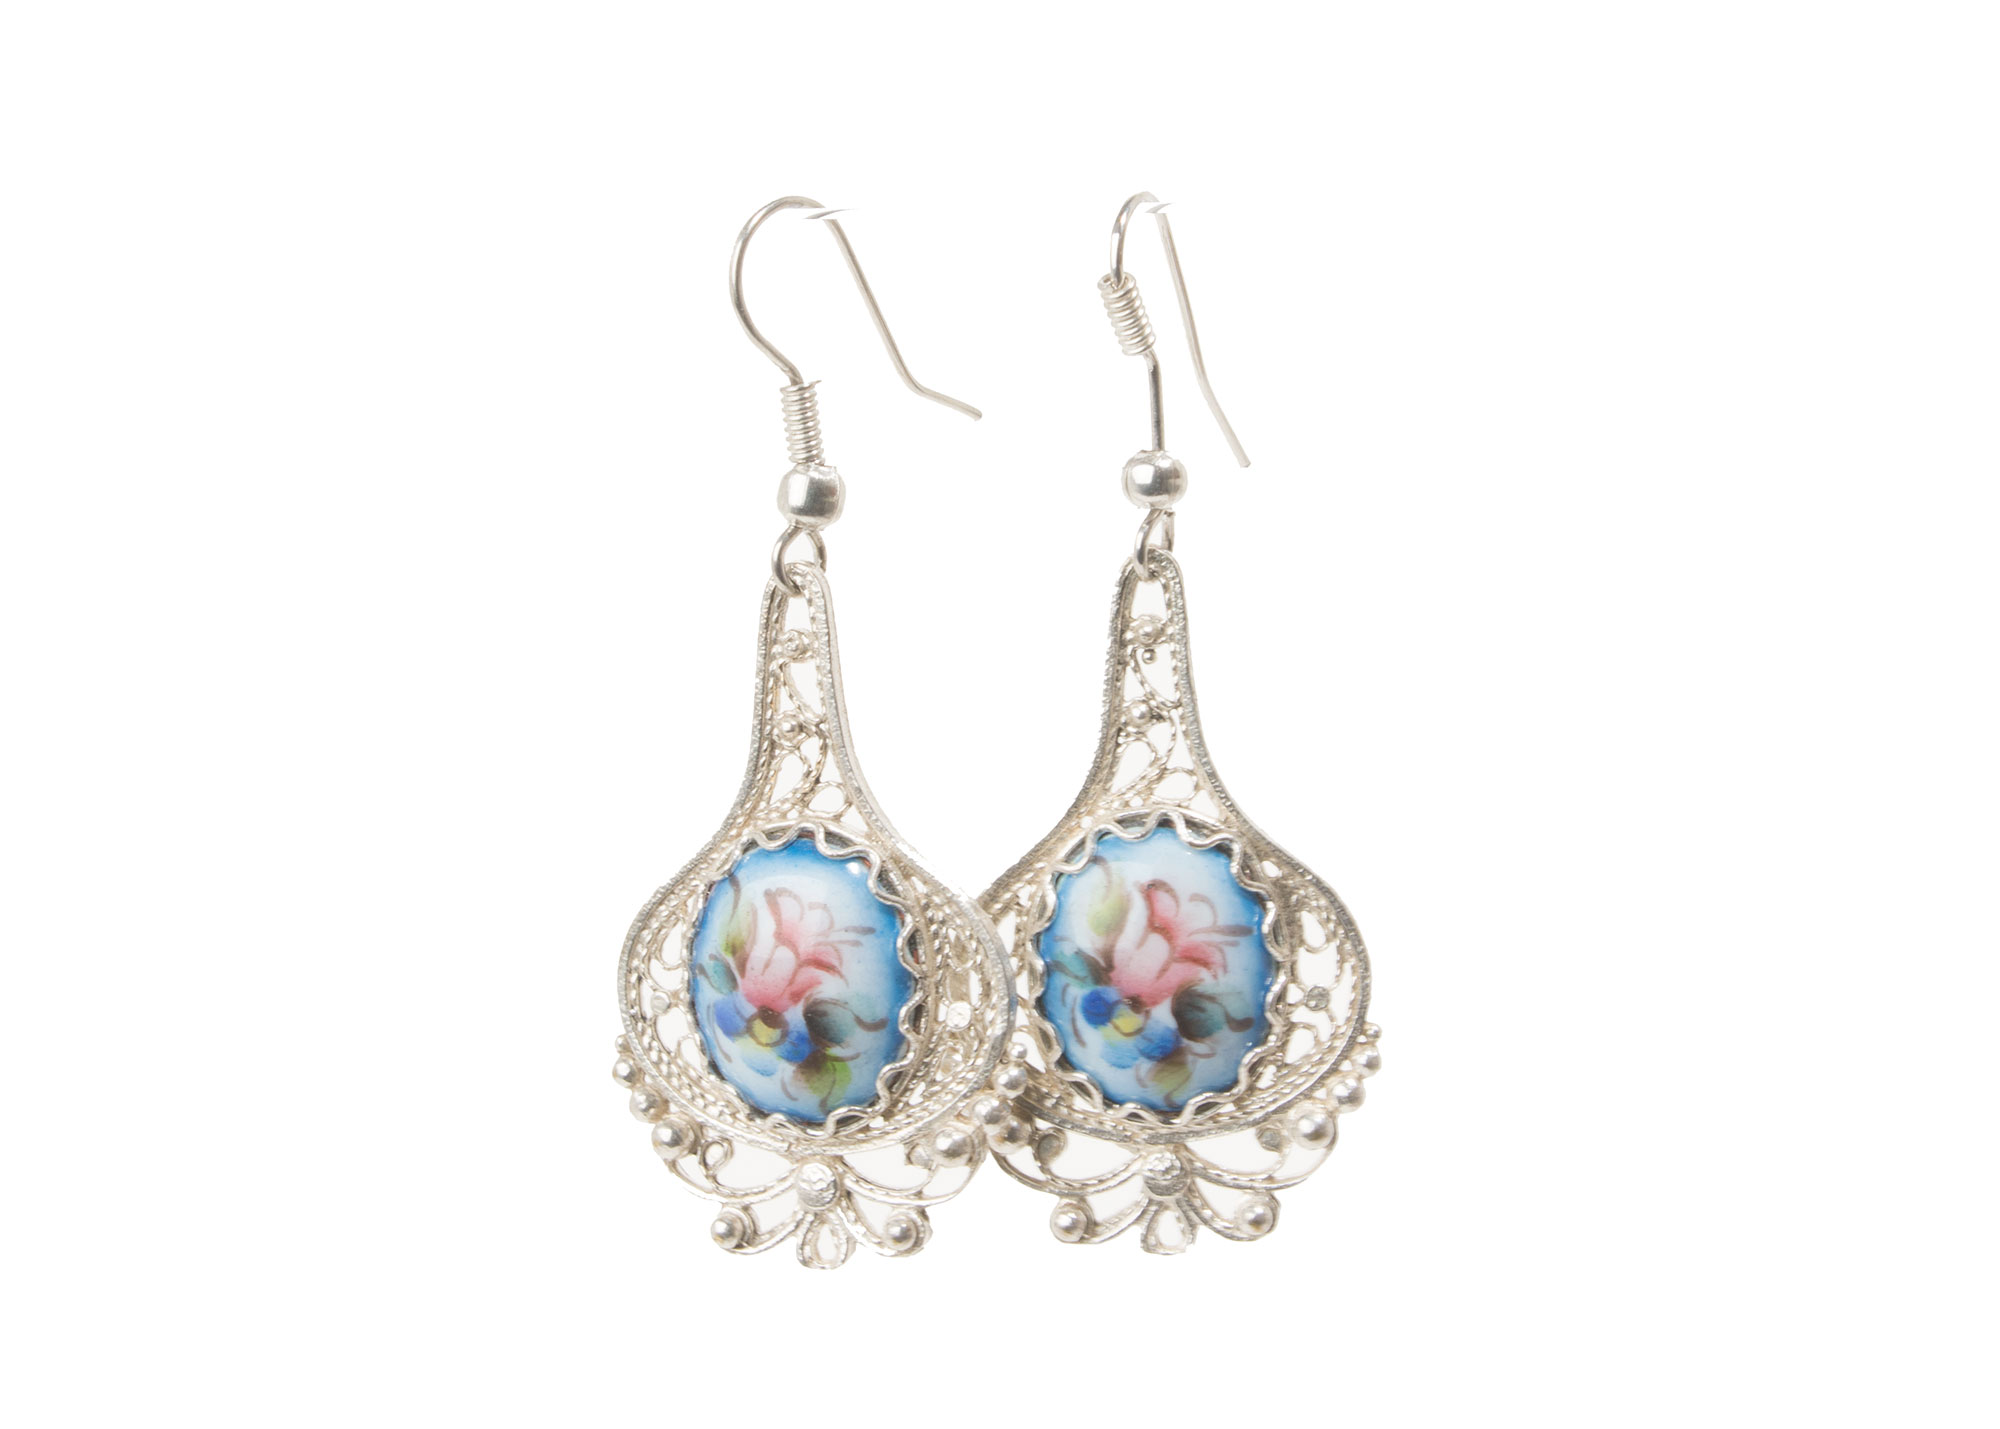 Buy Finift Blue Cupola Earrings at GoldenCockerel.com